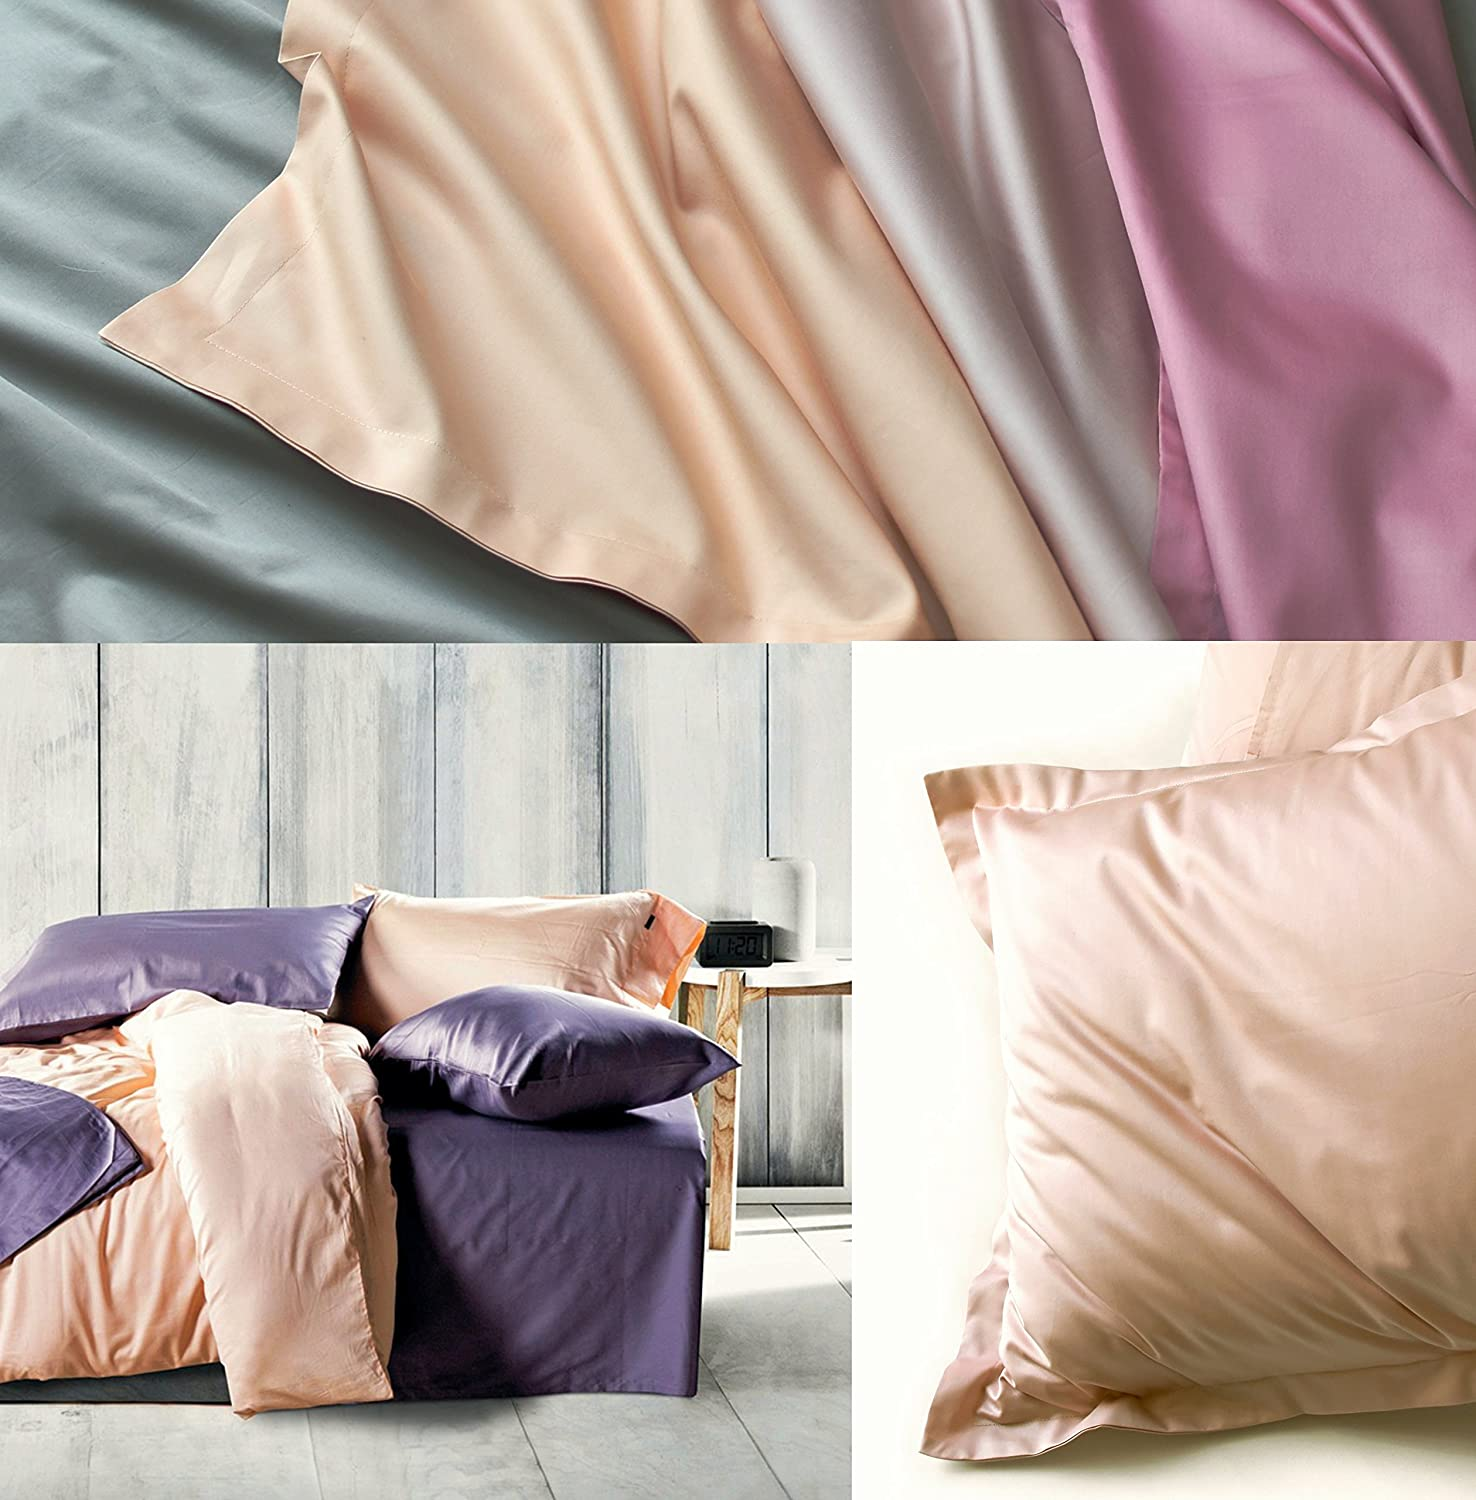 dorm and c zi dillards apartment comforters quilts comforter bedding multi dusty rose pink